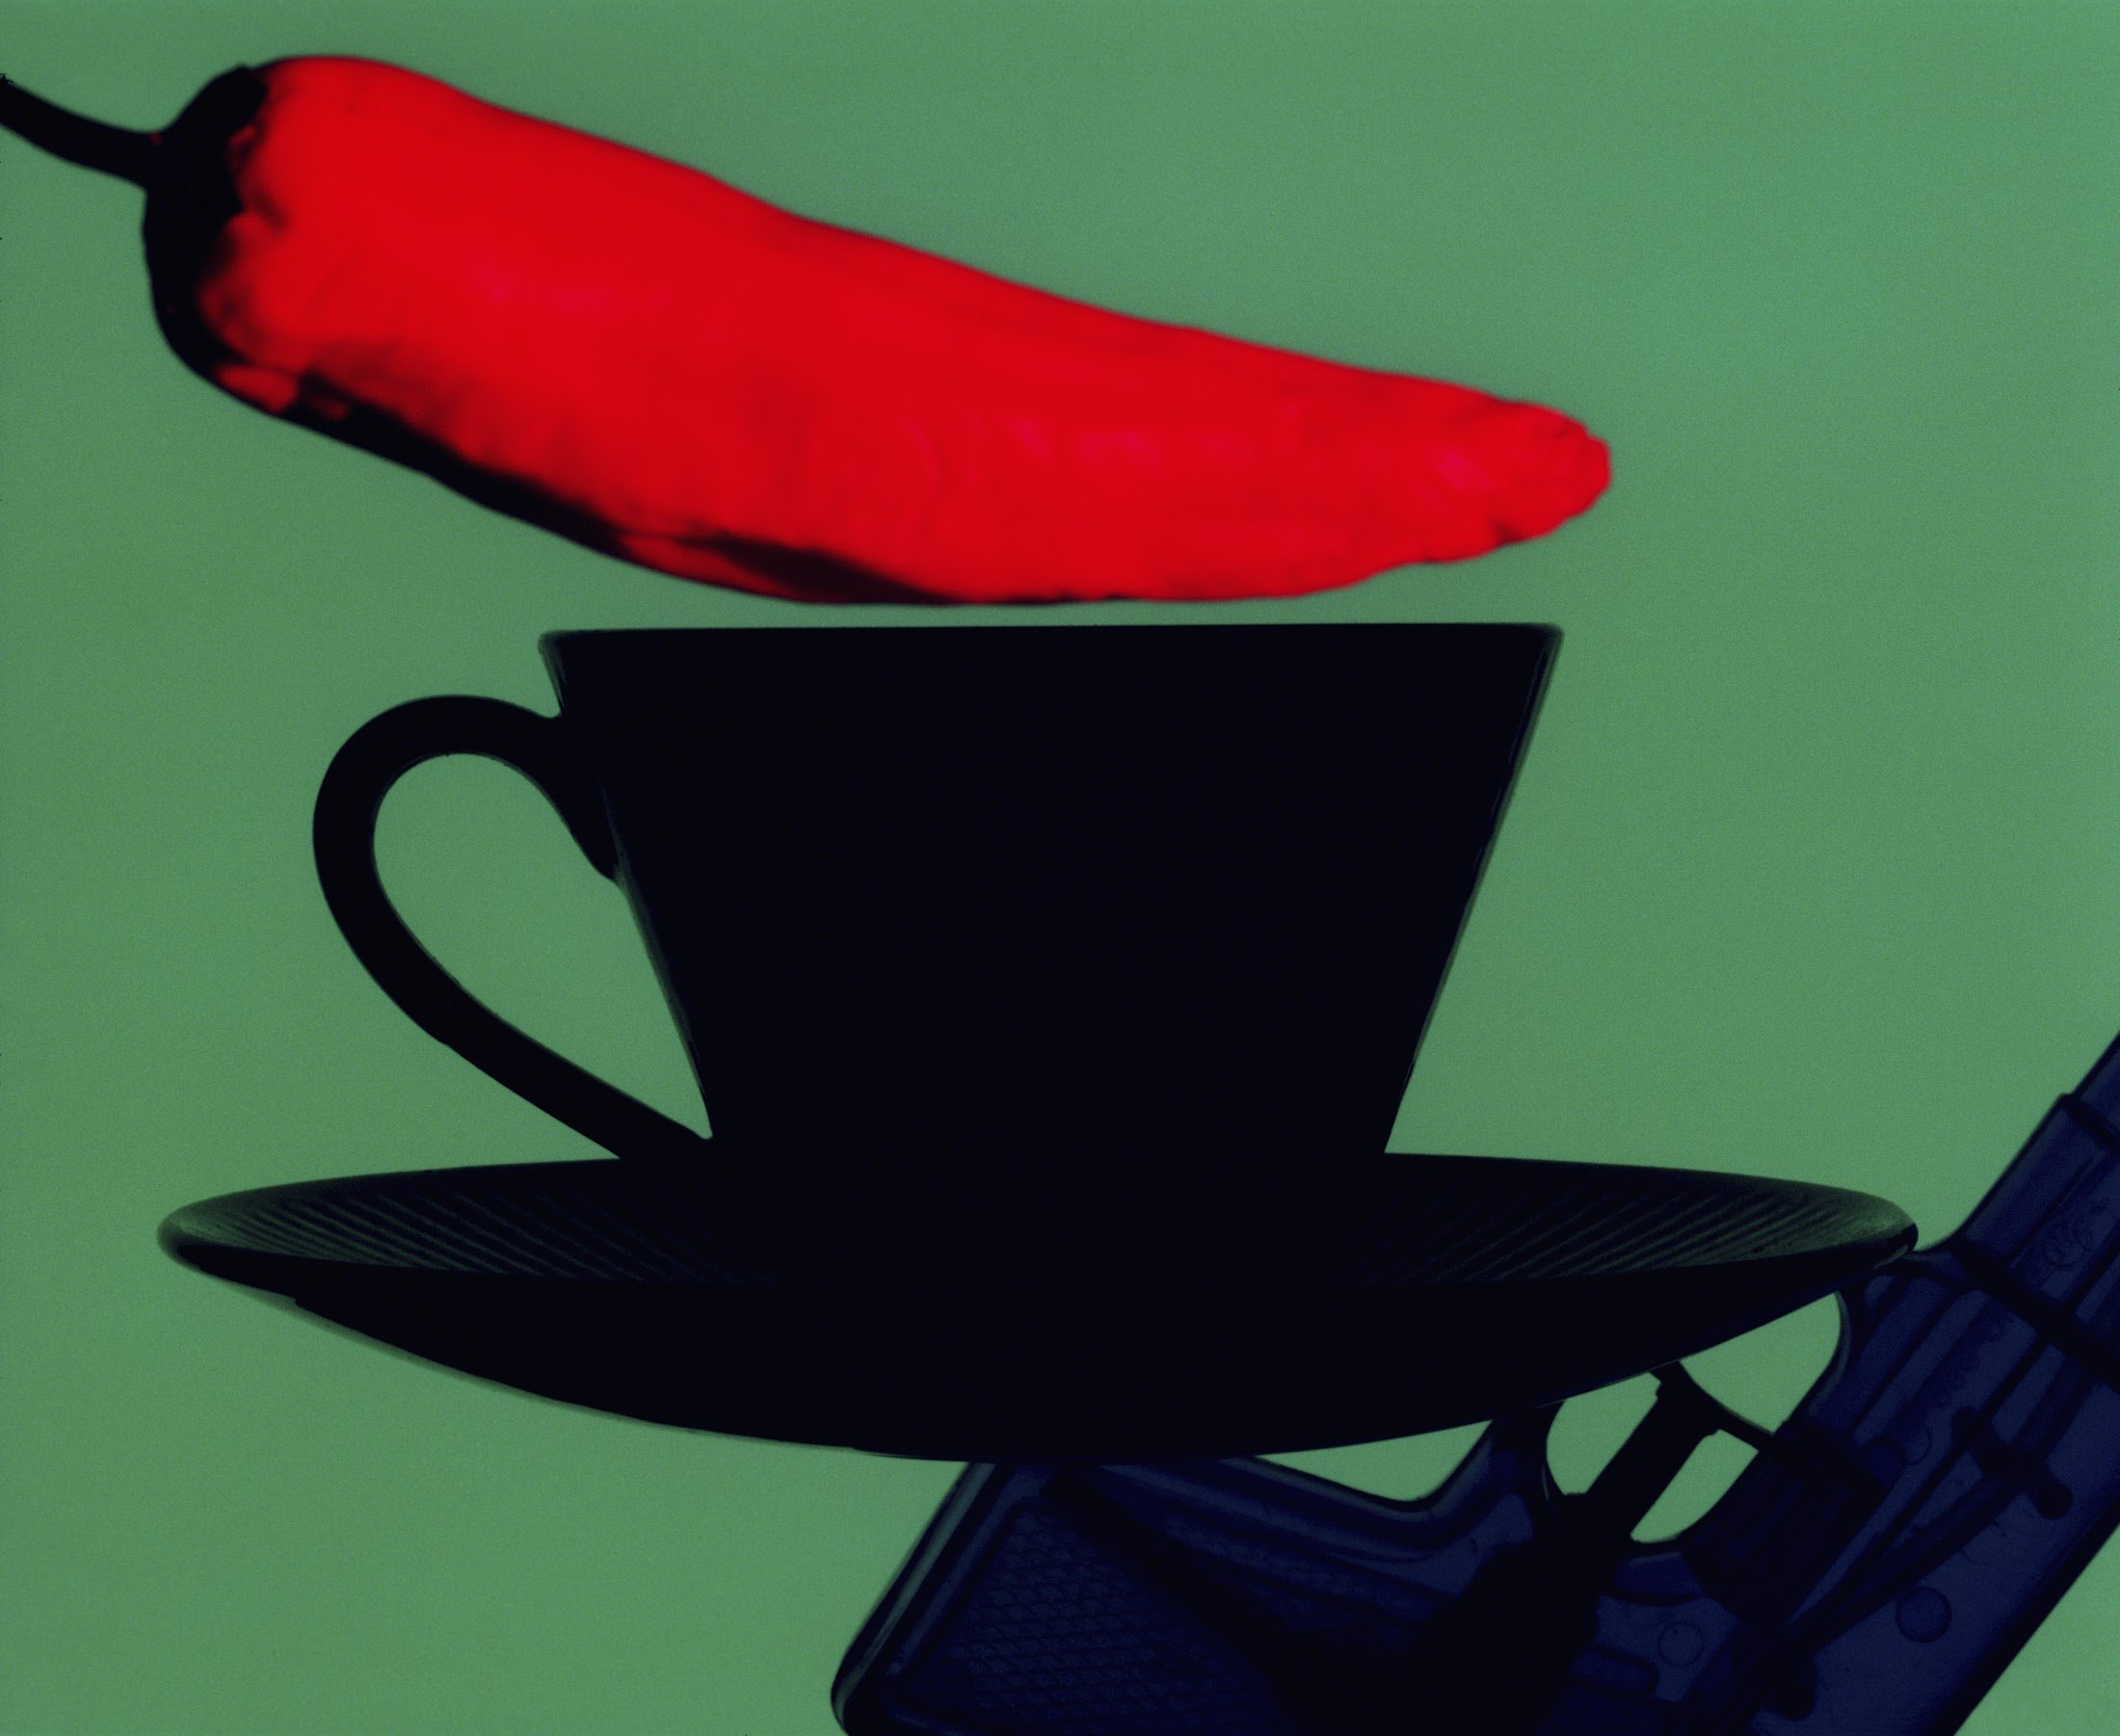 Reprint of Close-up of a coffee cup with a red chili pepper